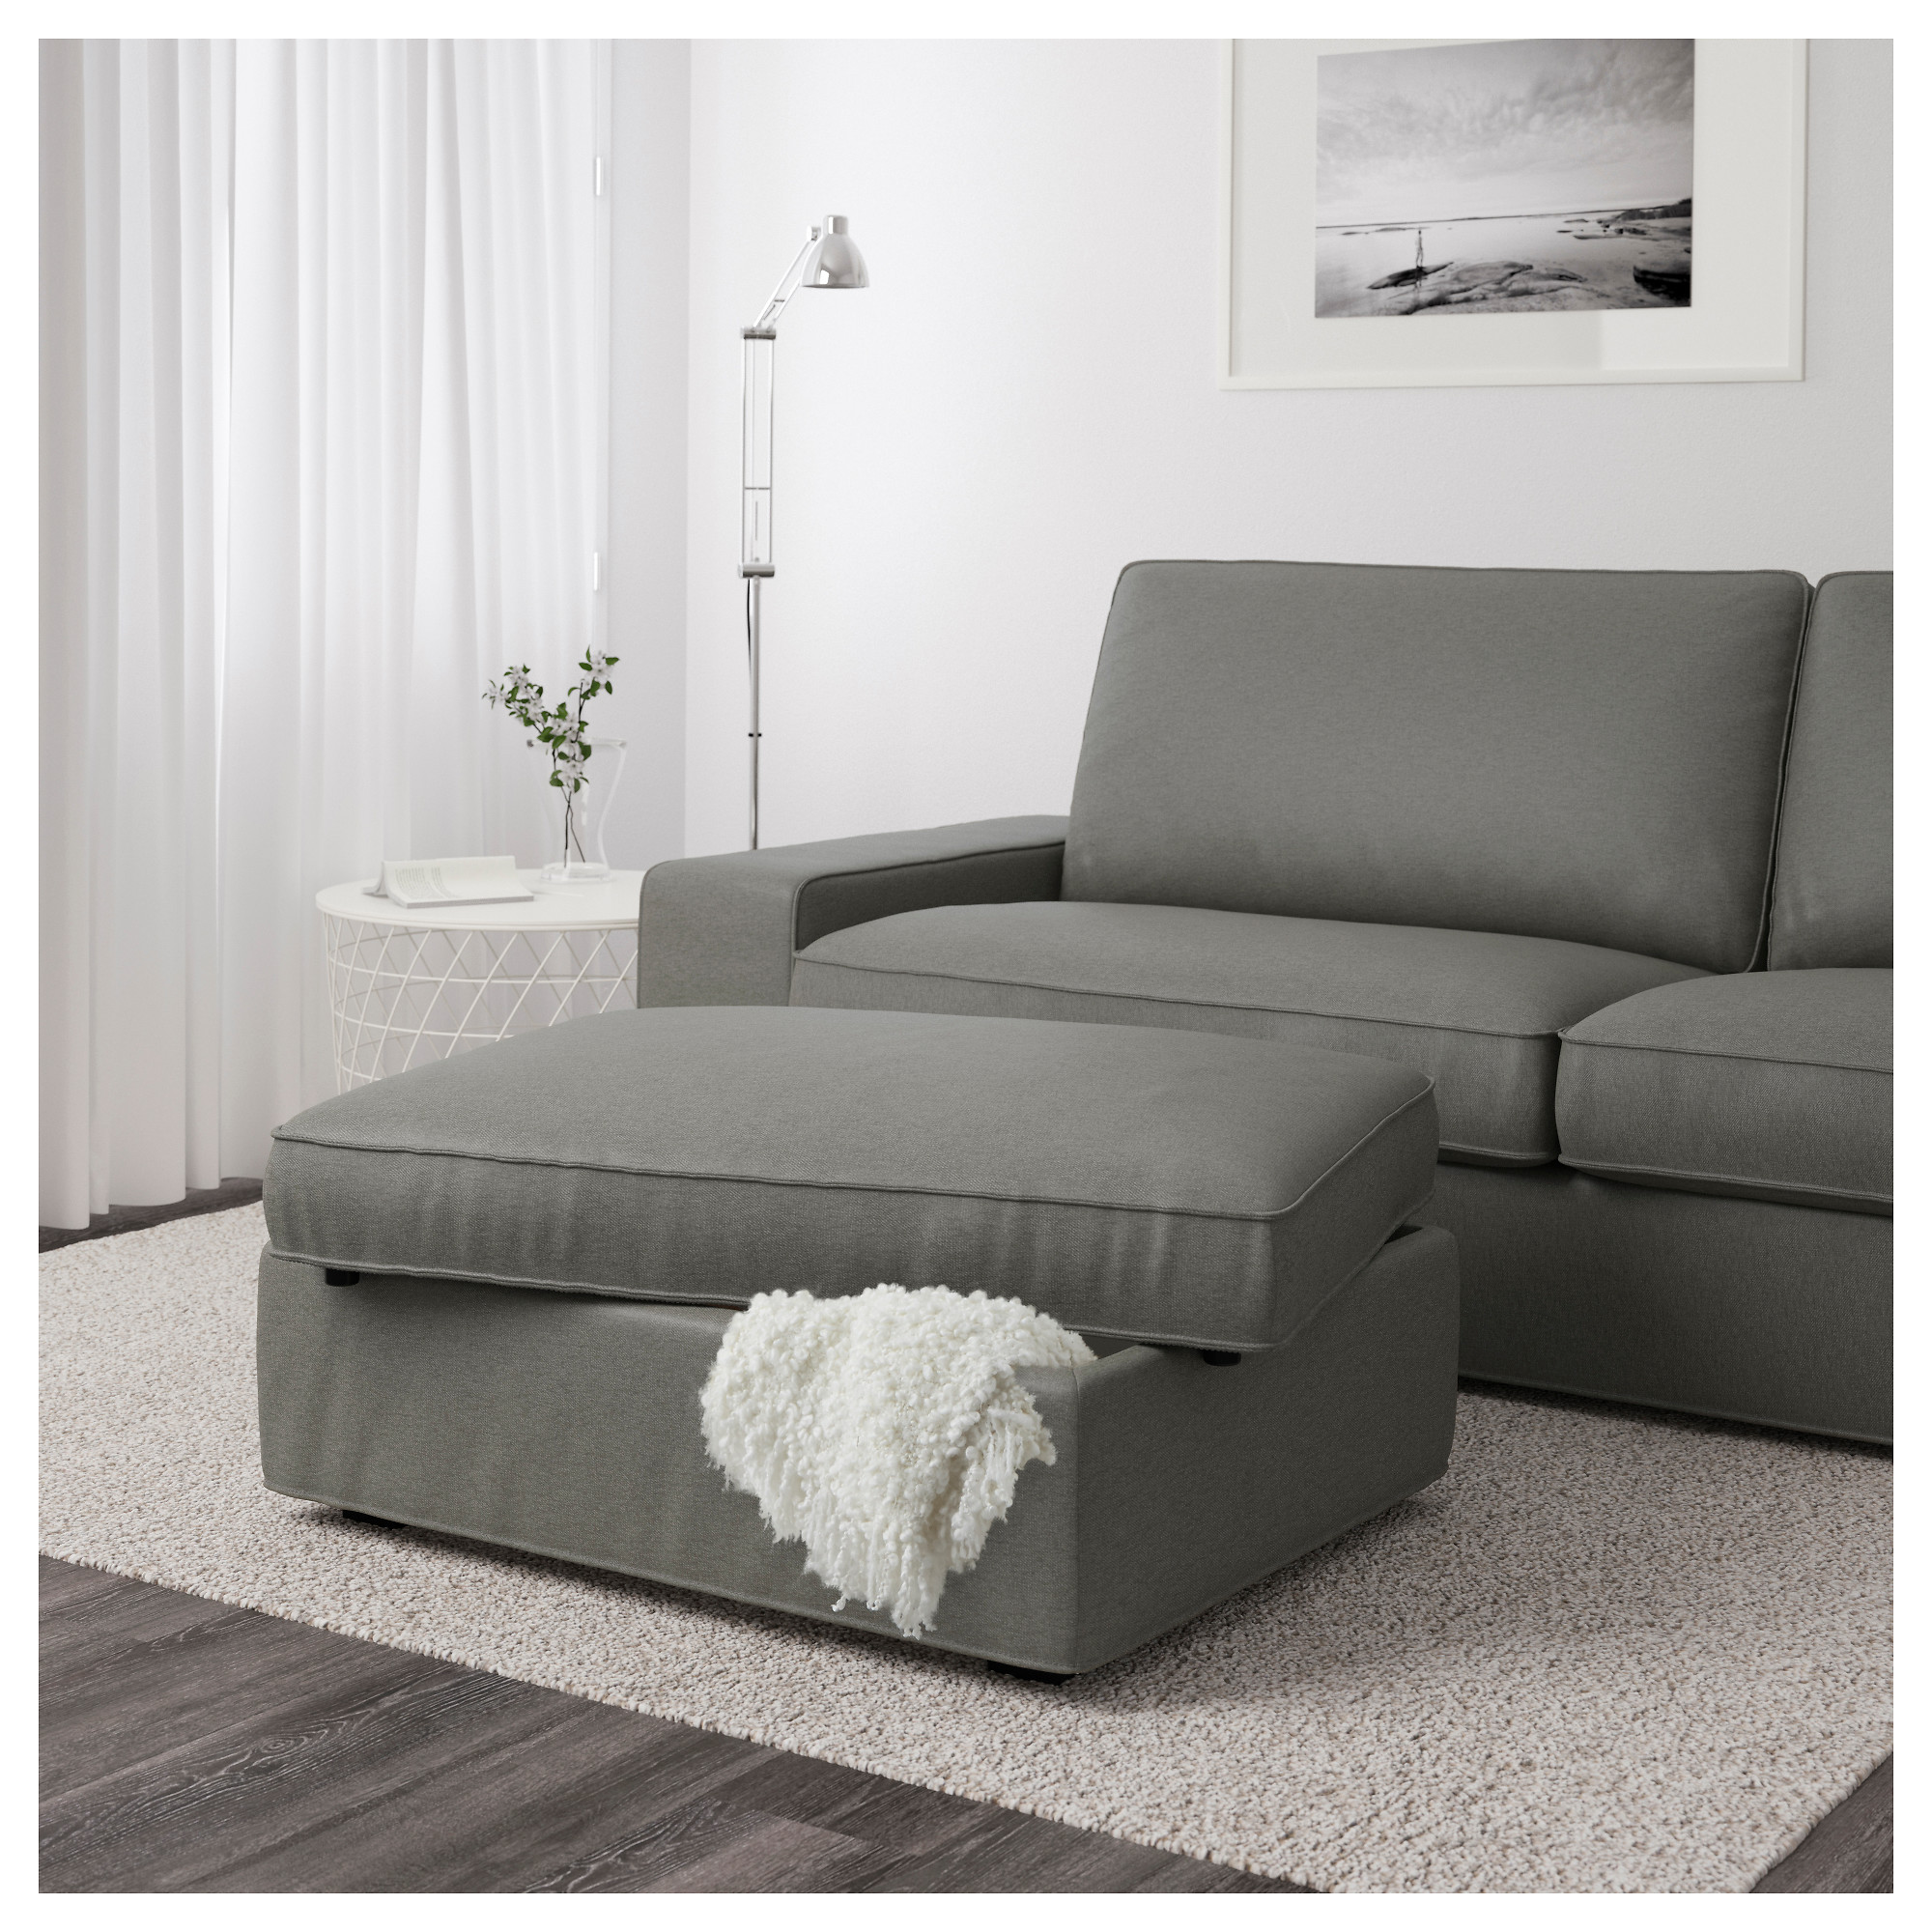 Admirable Kivik Footstool With Storage Borred Grey Green Ikea Pabps2019 Chair Design Images Pabps2019Com